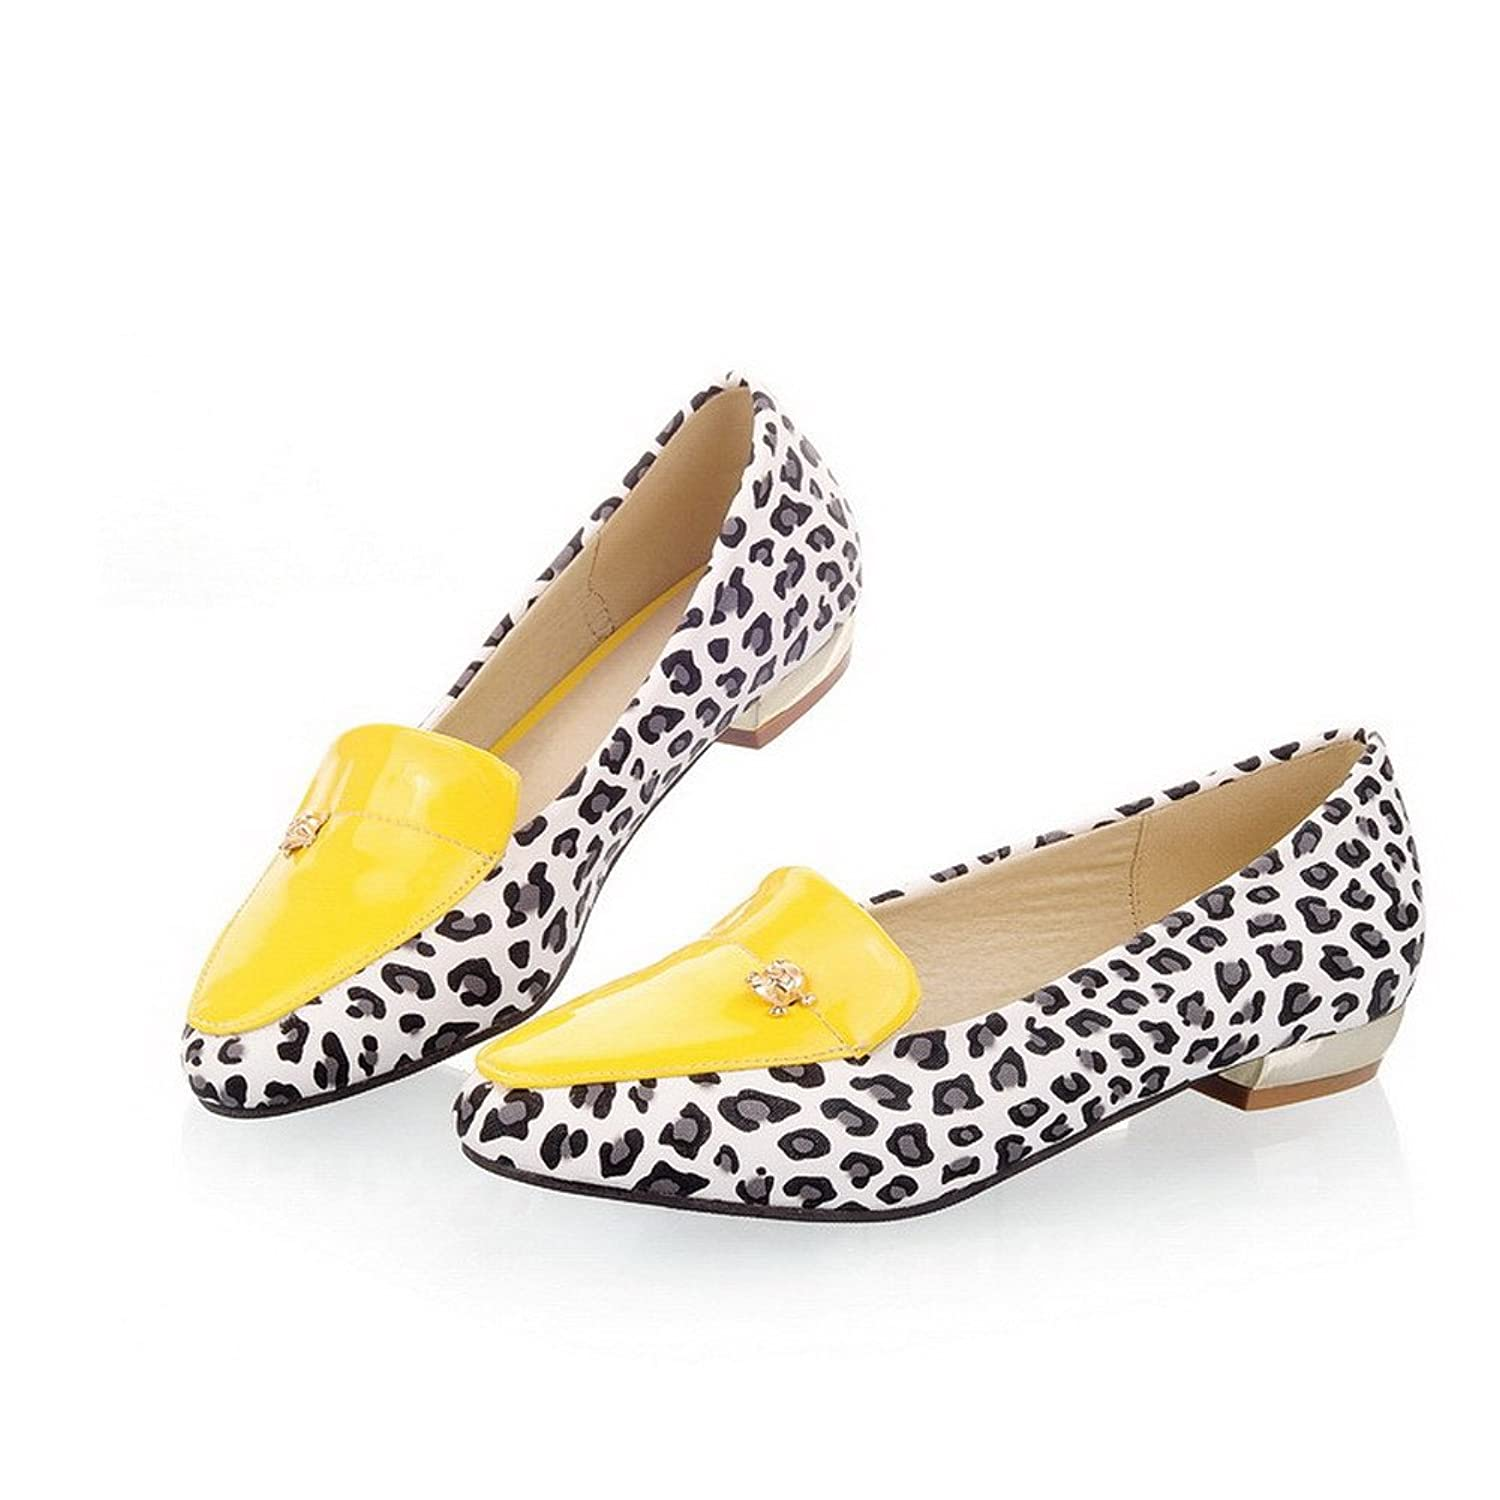 6c7b76c9a7a new WeiPoot Womens Closed Pointed Toe Low Heel Patent Leather PU Animal- print Pumps with